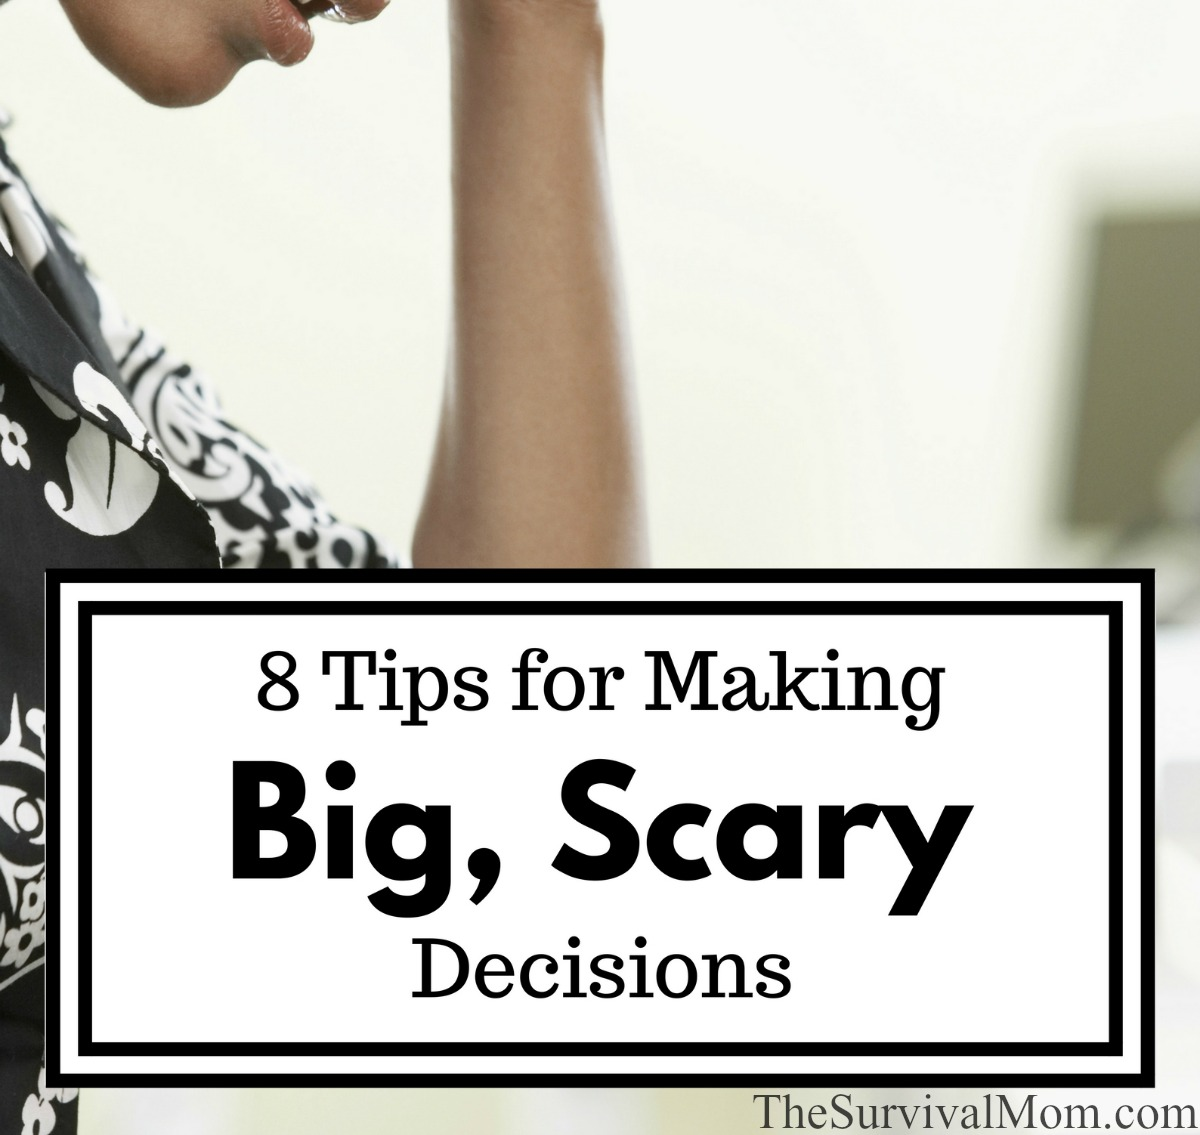 how tomake a big decision